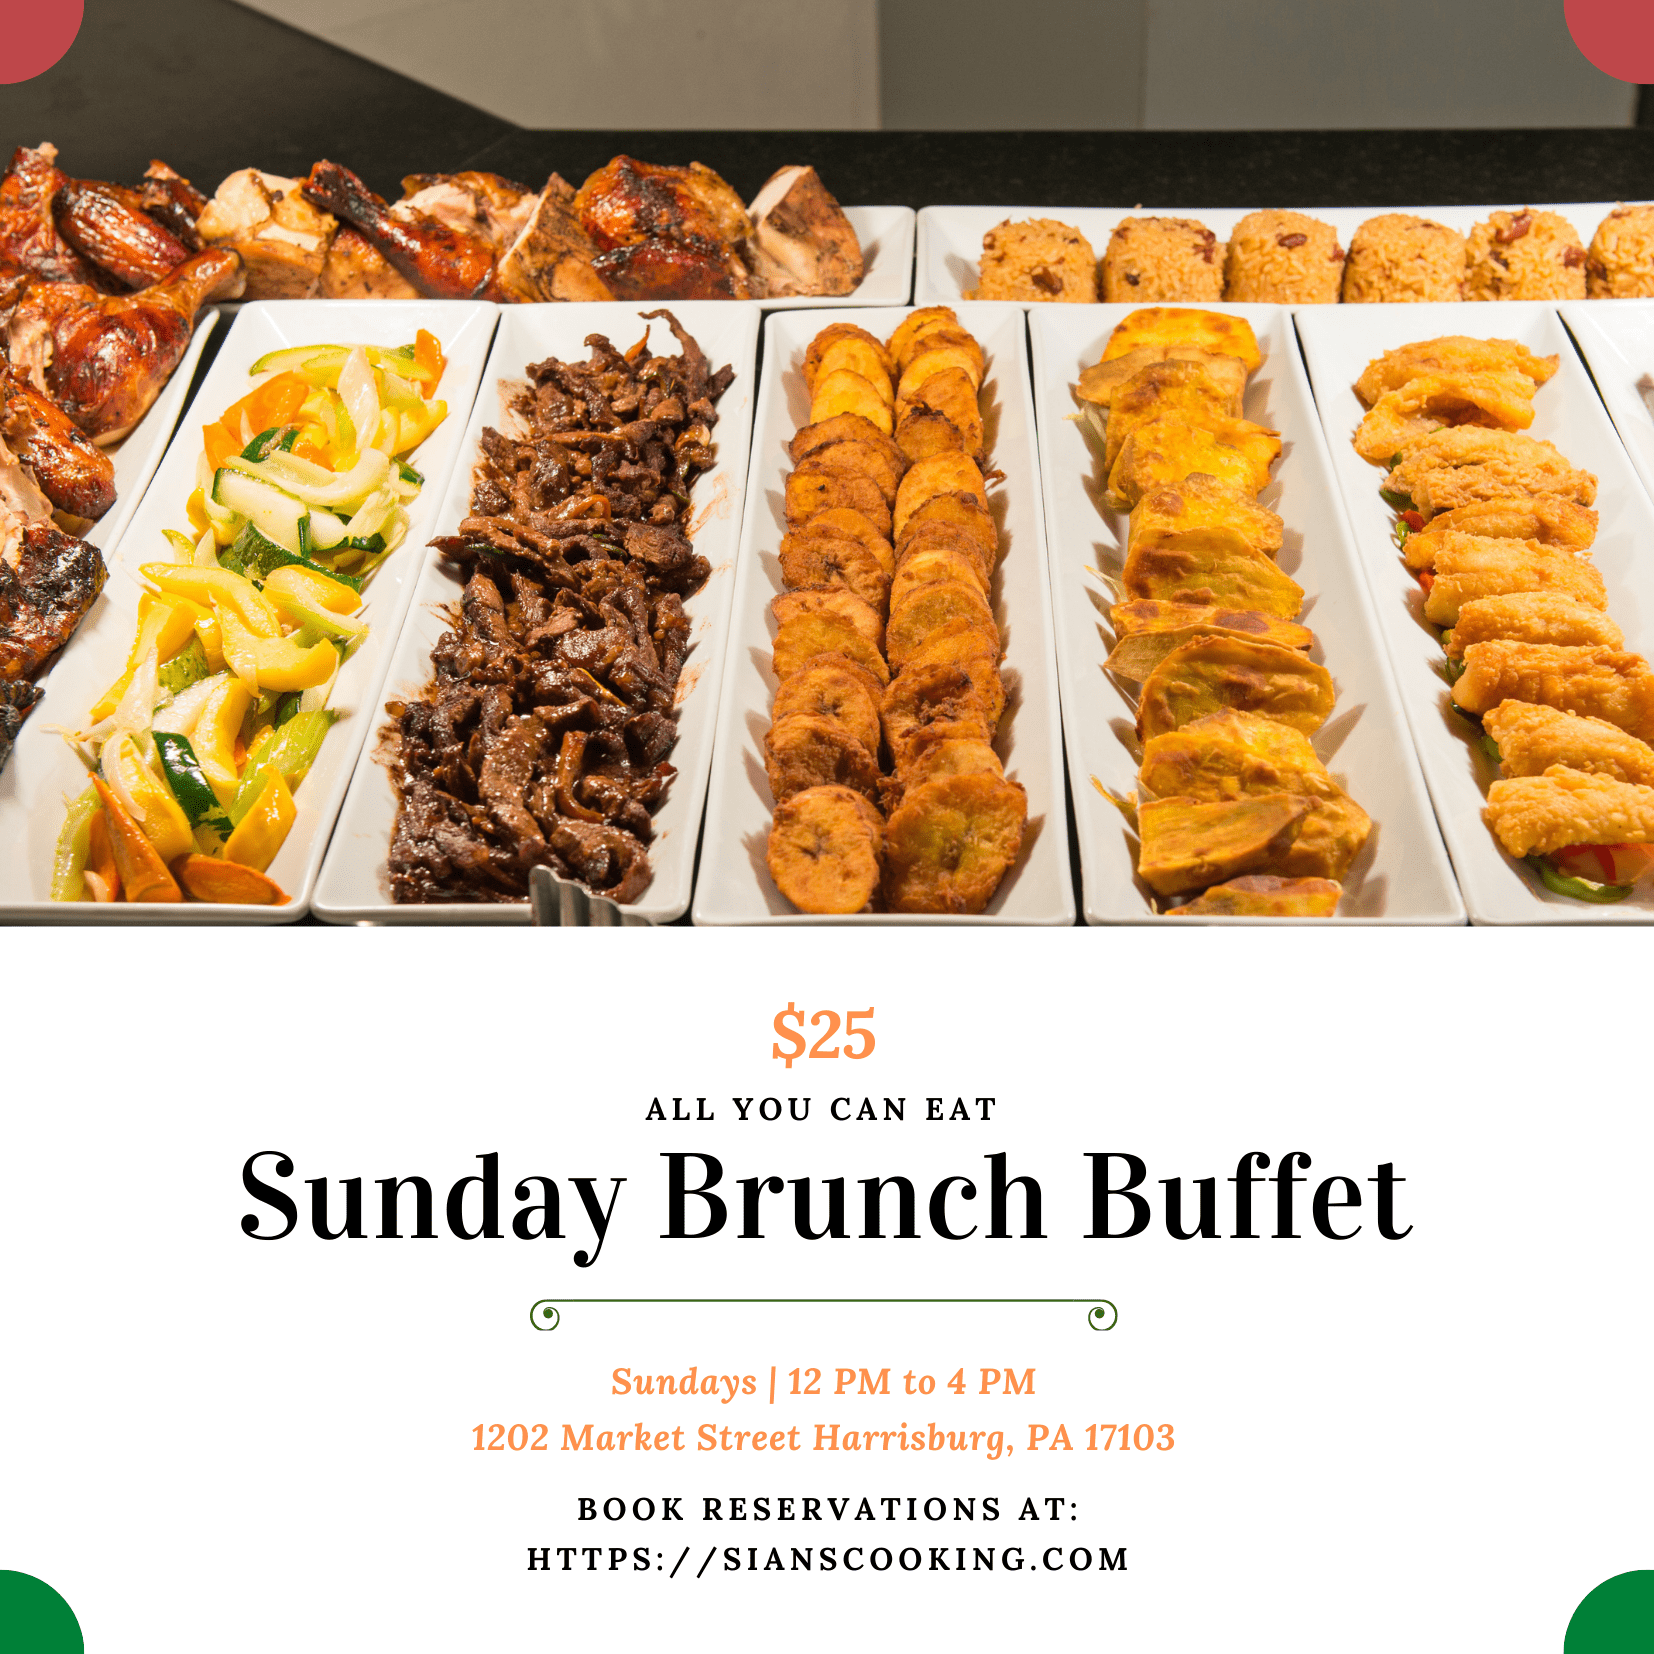 $25 all you can eat Sunday brunch